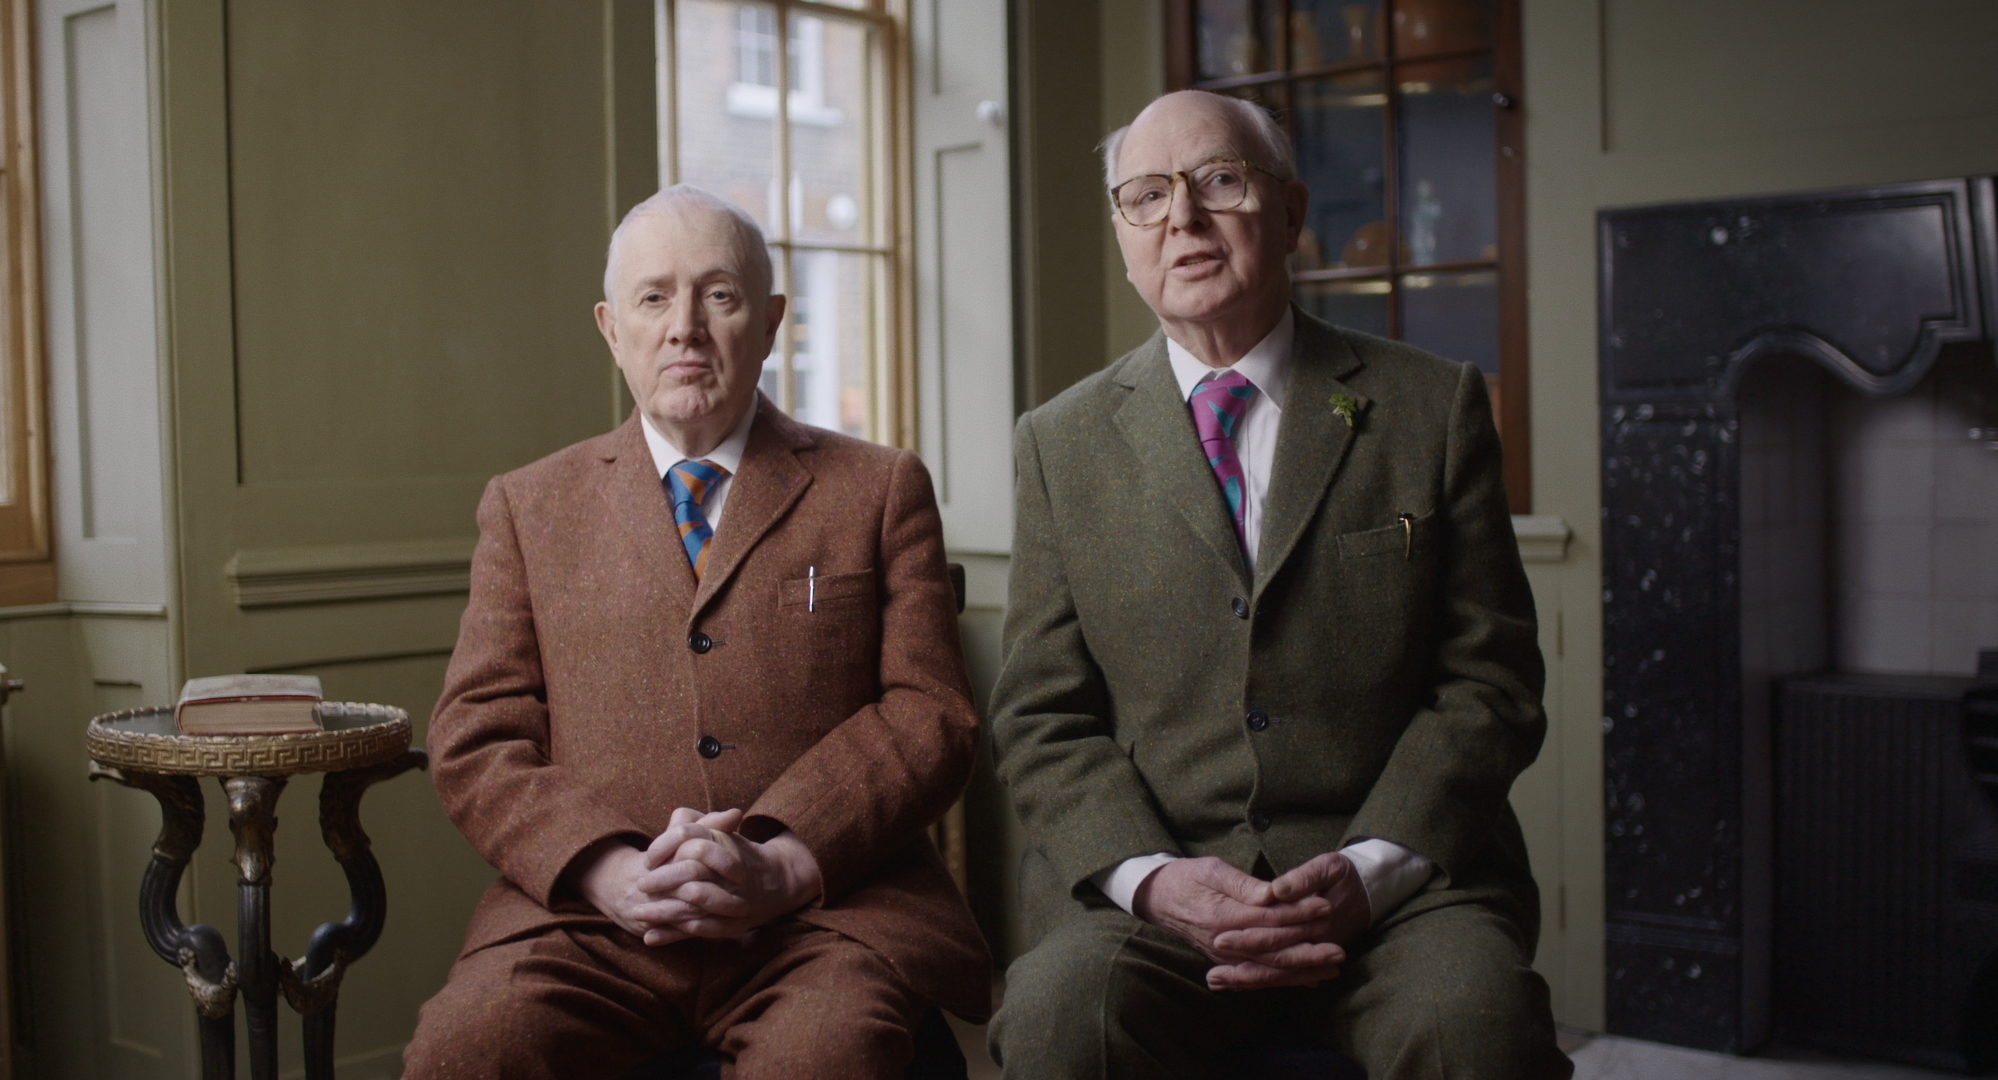 Gilbert & George, artists Project #3